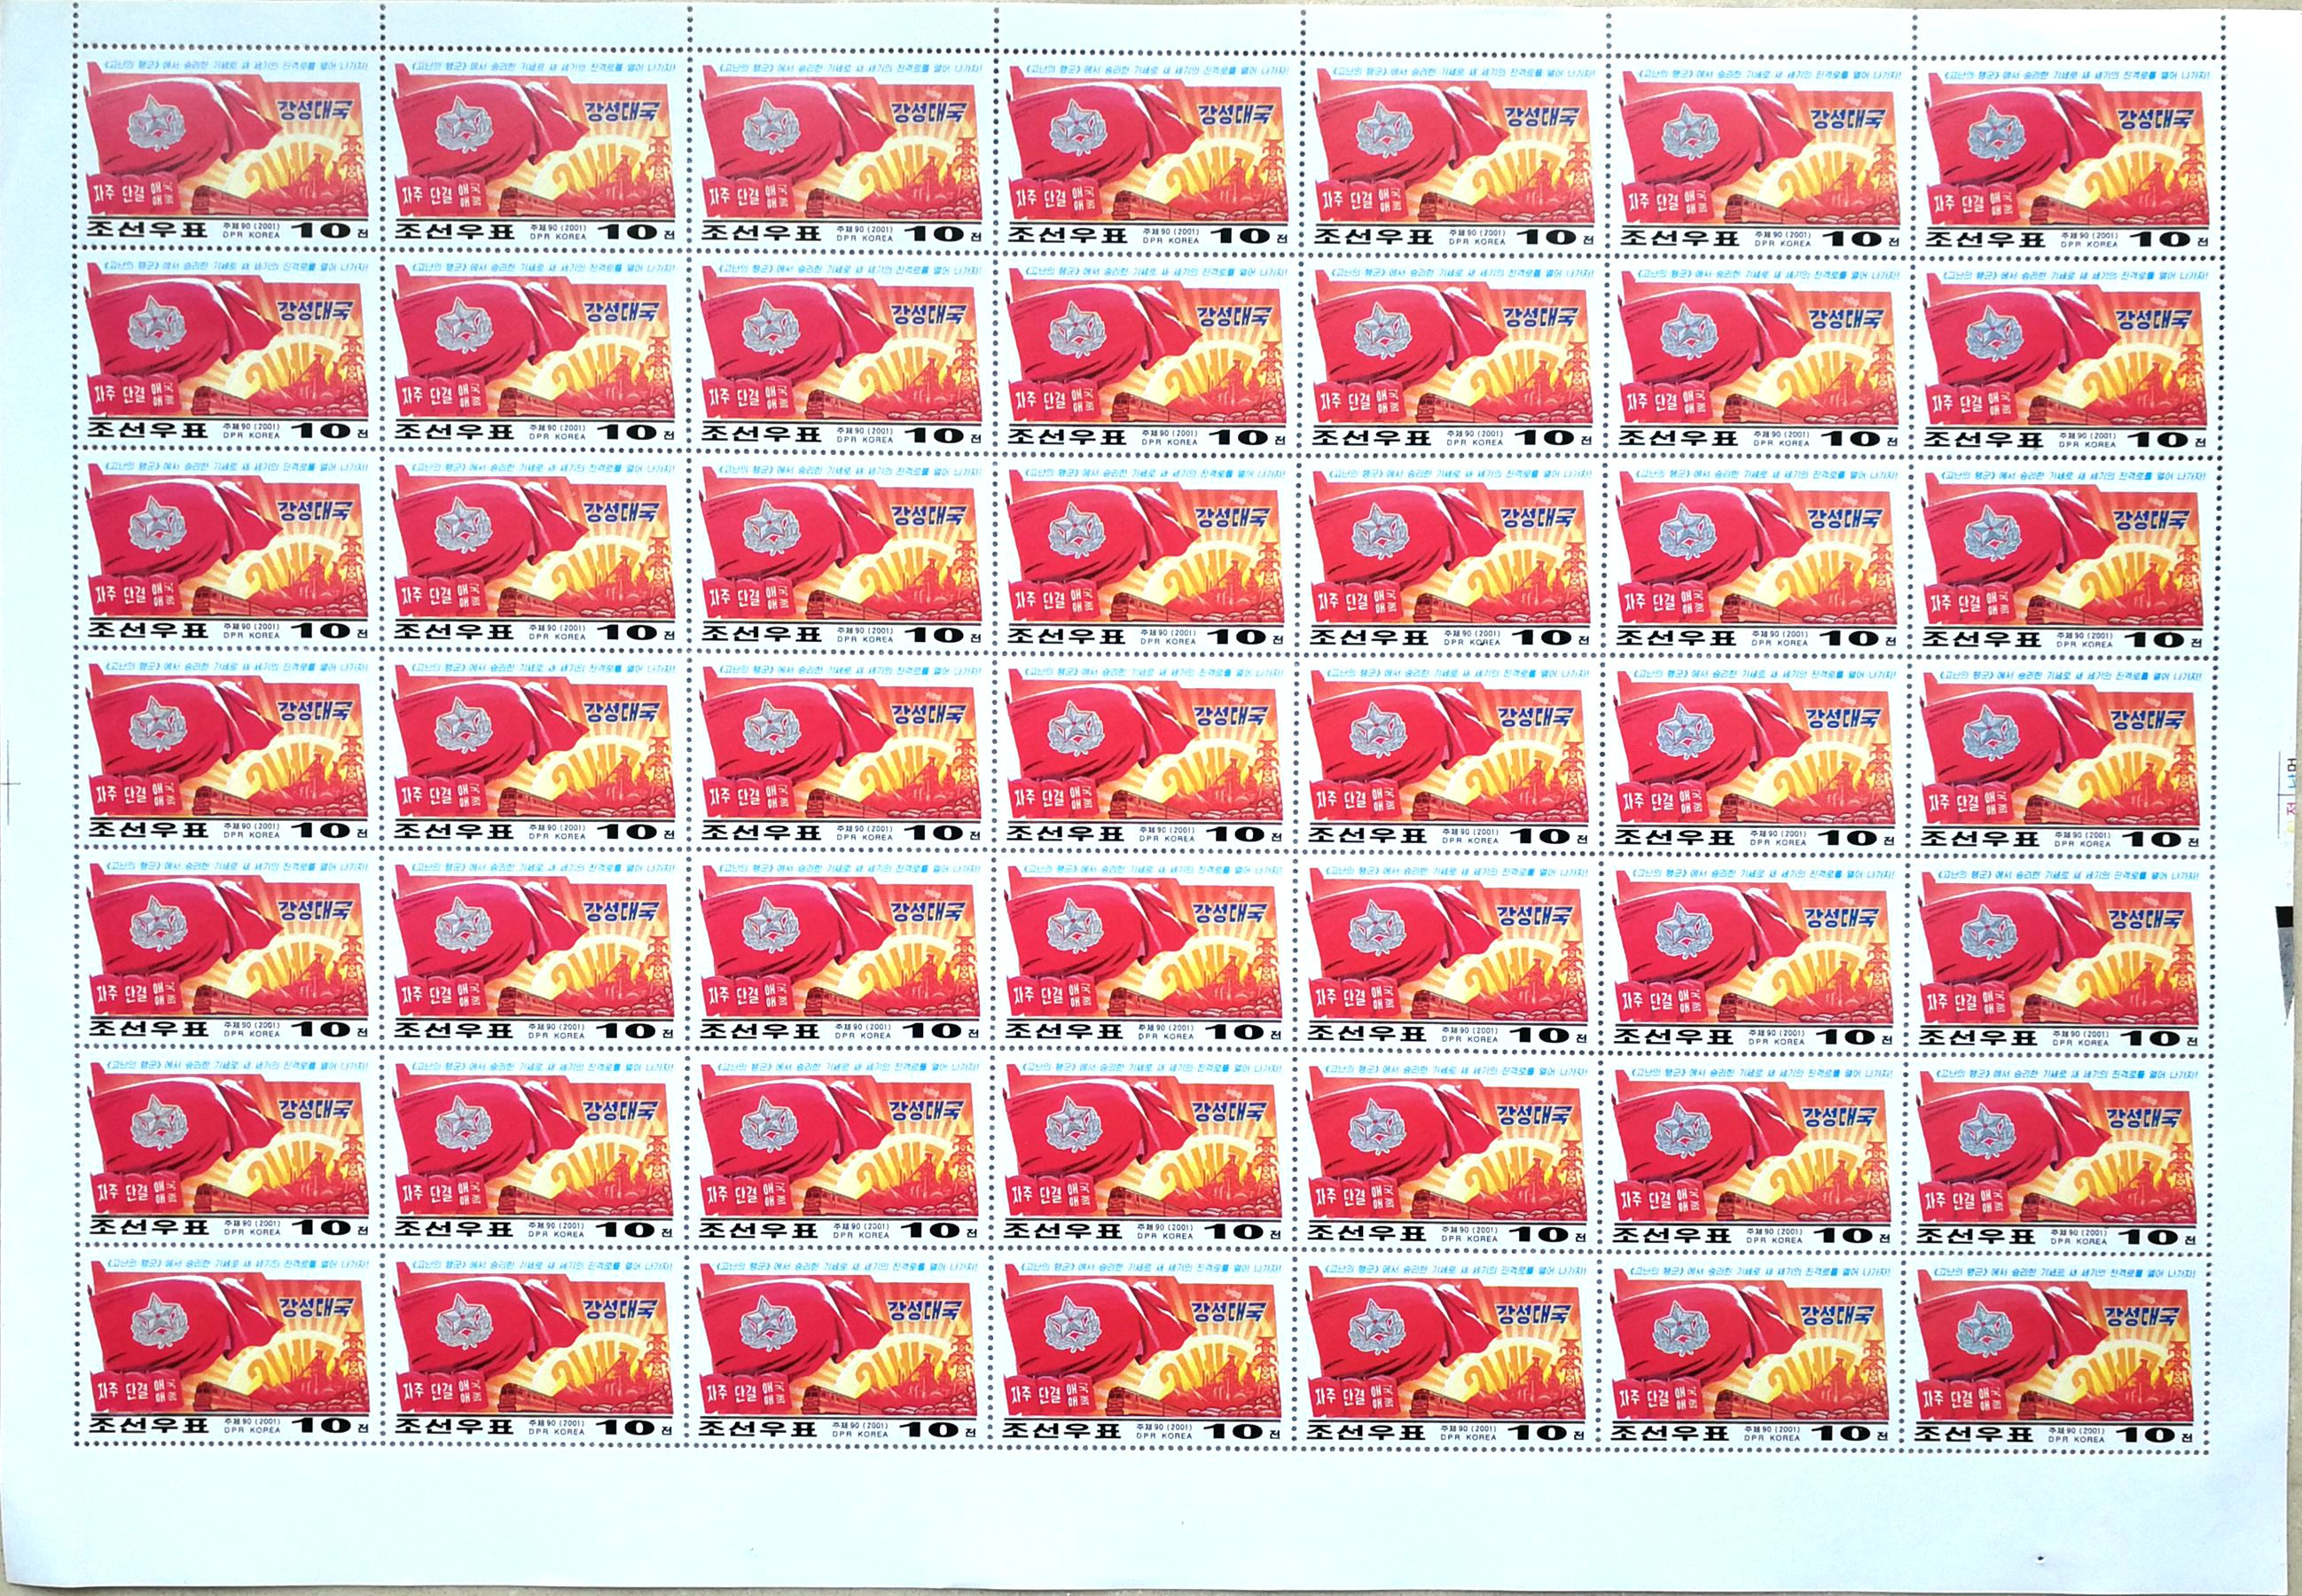 L4410, Korea Joint Editorial Army Flag, Full Sheet of 49 Pcs Stamps, 2001